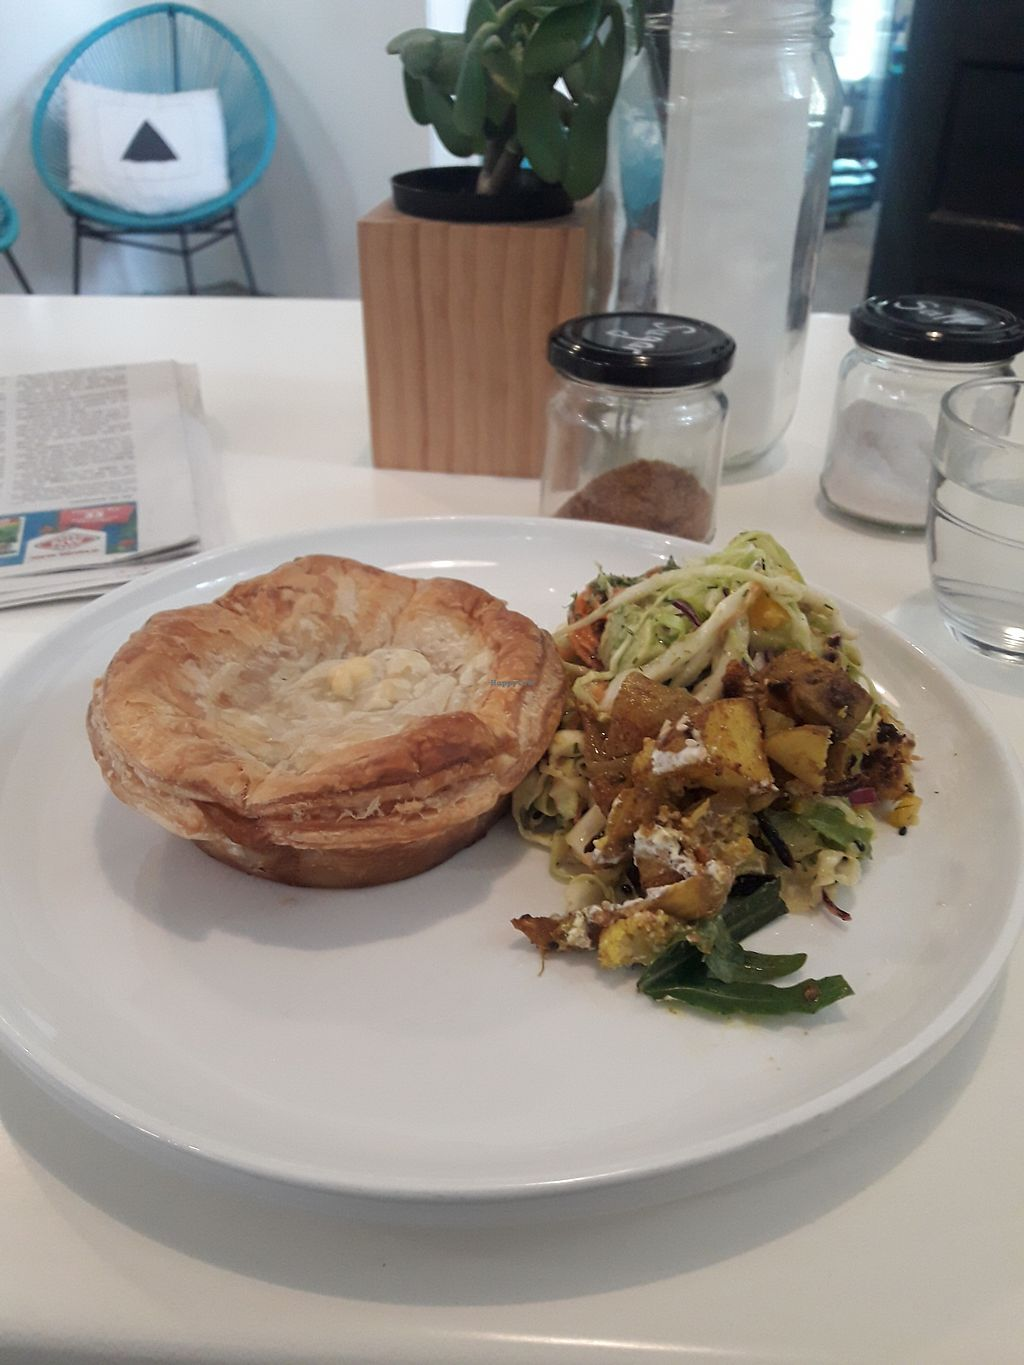 "Photo of Greenleaf Organics  by <a href=""/members/profile/TemptationCakes"">TemptationCakes</a> <br/>Vegan curried veg pie with salad their salad is very nice also not just a few leaves like most cafes! <br/> September 29, 2017  - <a href='/contact/abuse/image/99686/309596'>Report</a>"